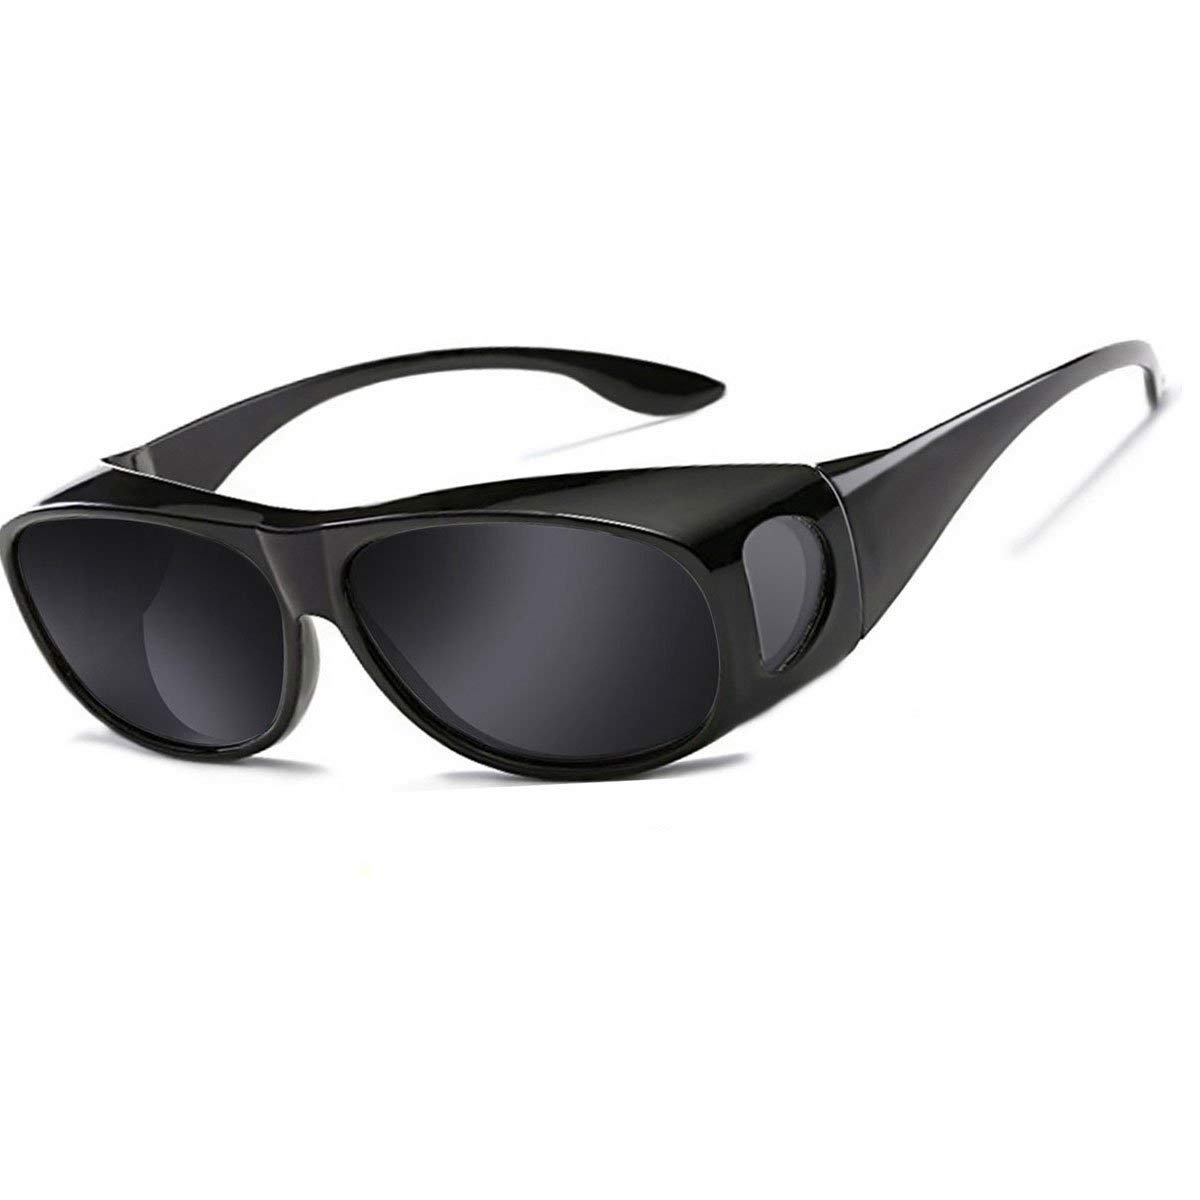 Wear Over sunglasses for men women Polarized lens 854e1c3491